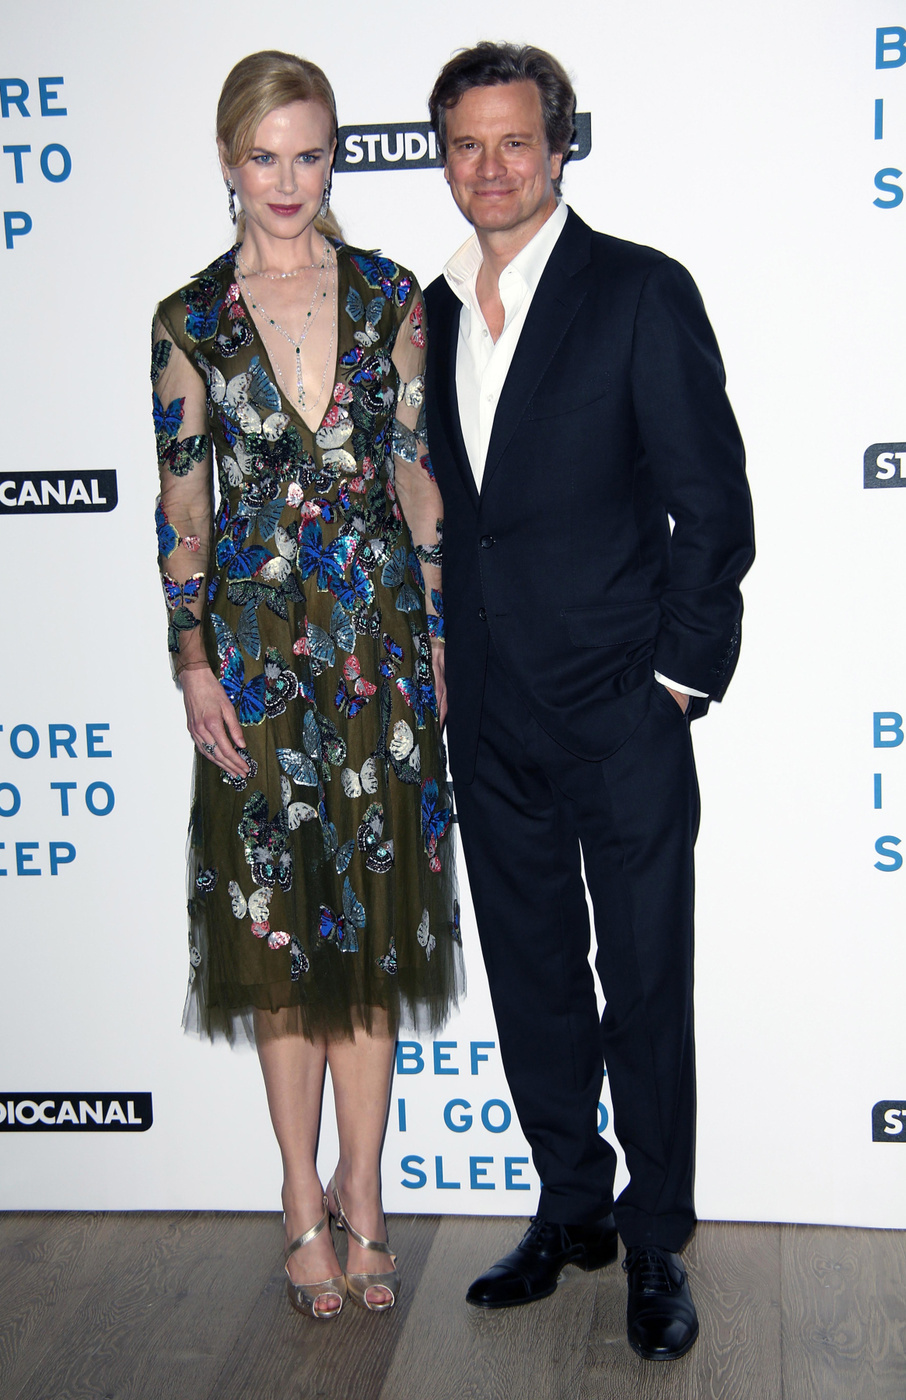 Nicole Kidman and Colin Firth attend the UK Gala screening of 'Before I Go To Sleep' at the Ham Yard Hotel in London, England